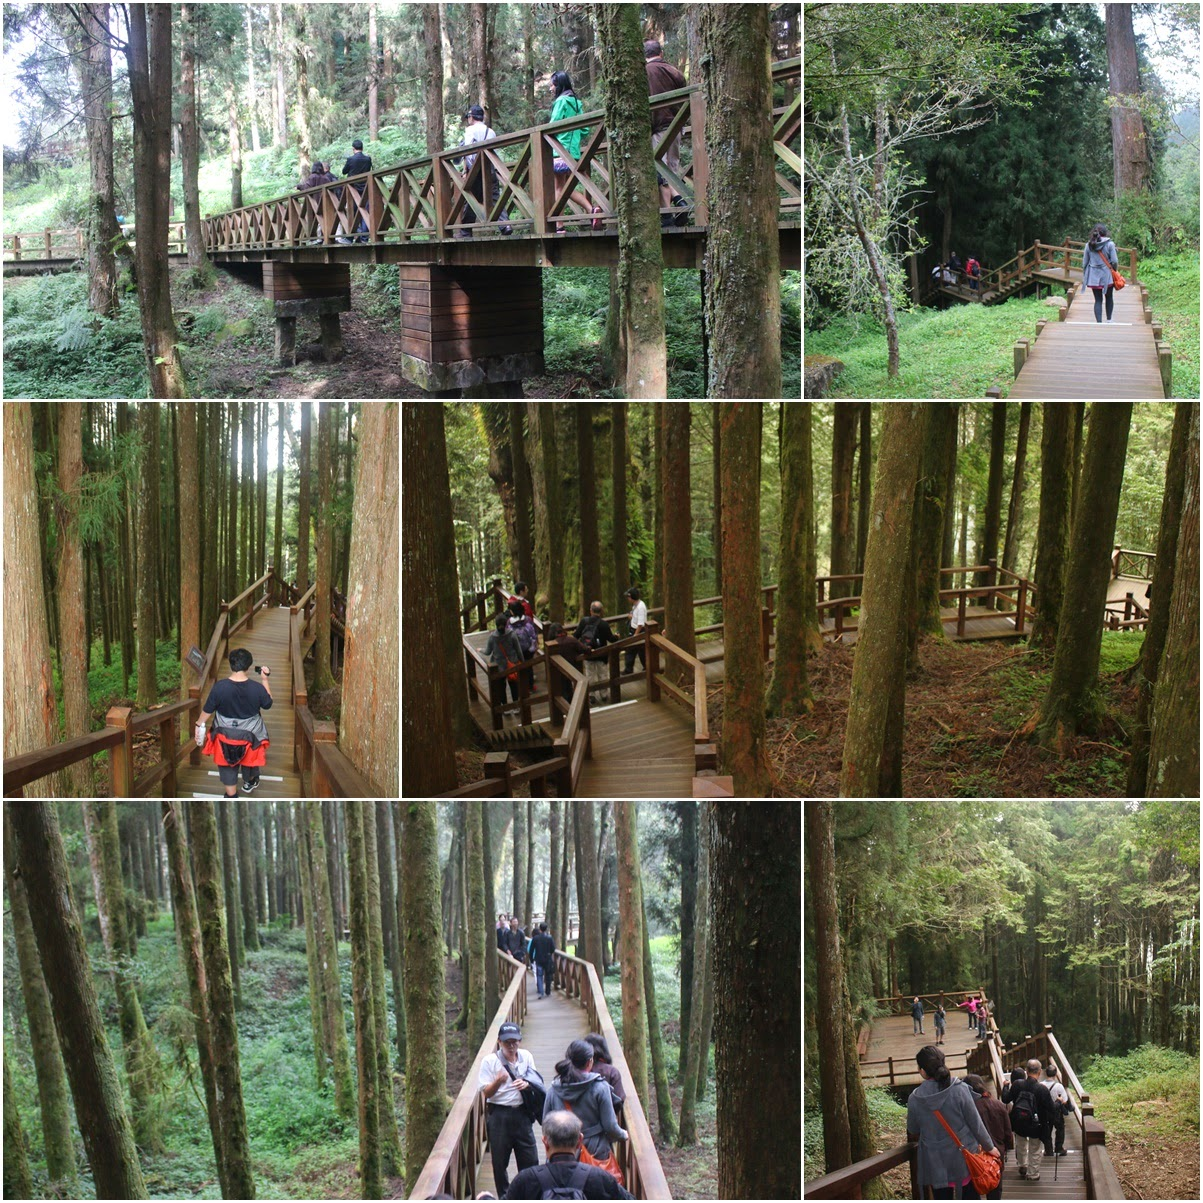 Walking along this long wooden bridge which can hold 78 people at Alishan Sacred Tree on top of Alishan Mountain in Chiayi County of Taiwan